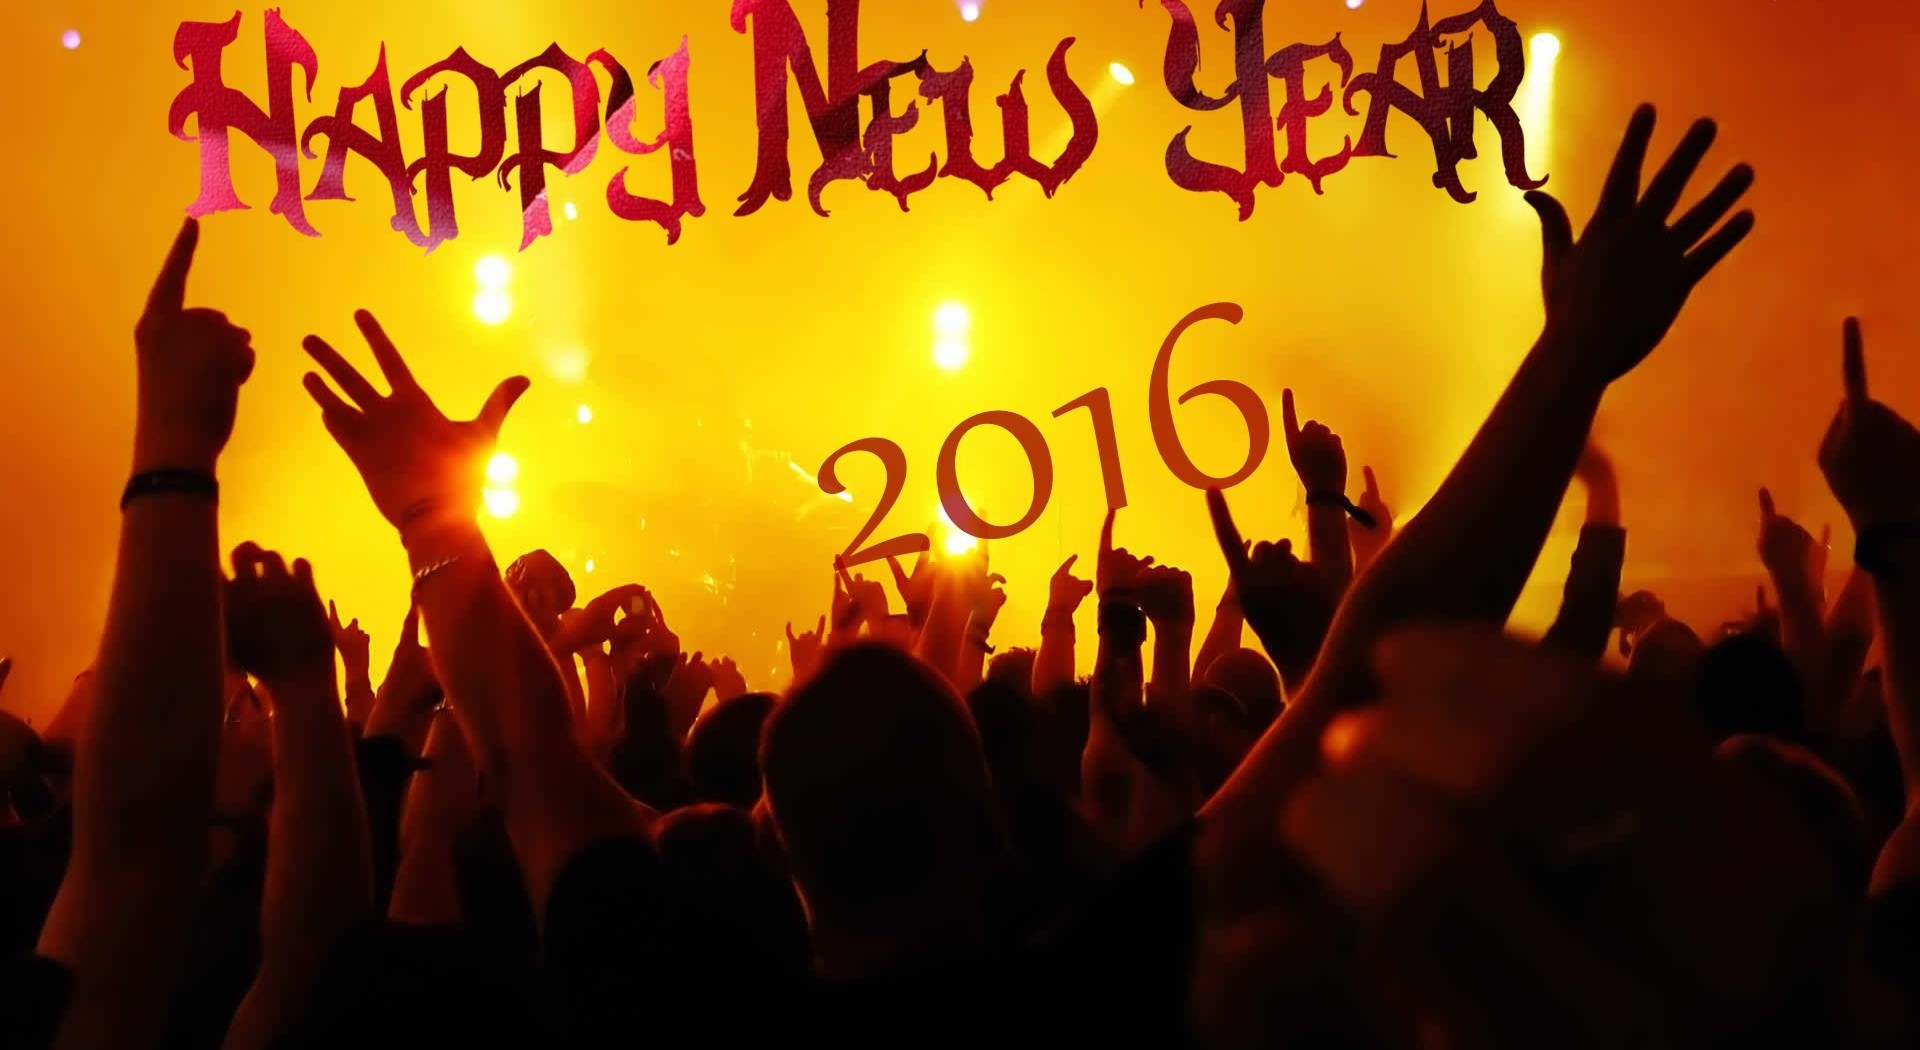 happy new year psd images